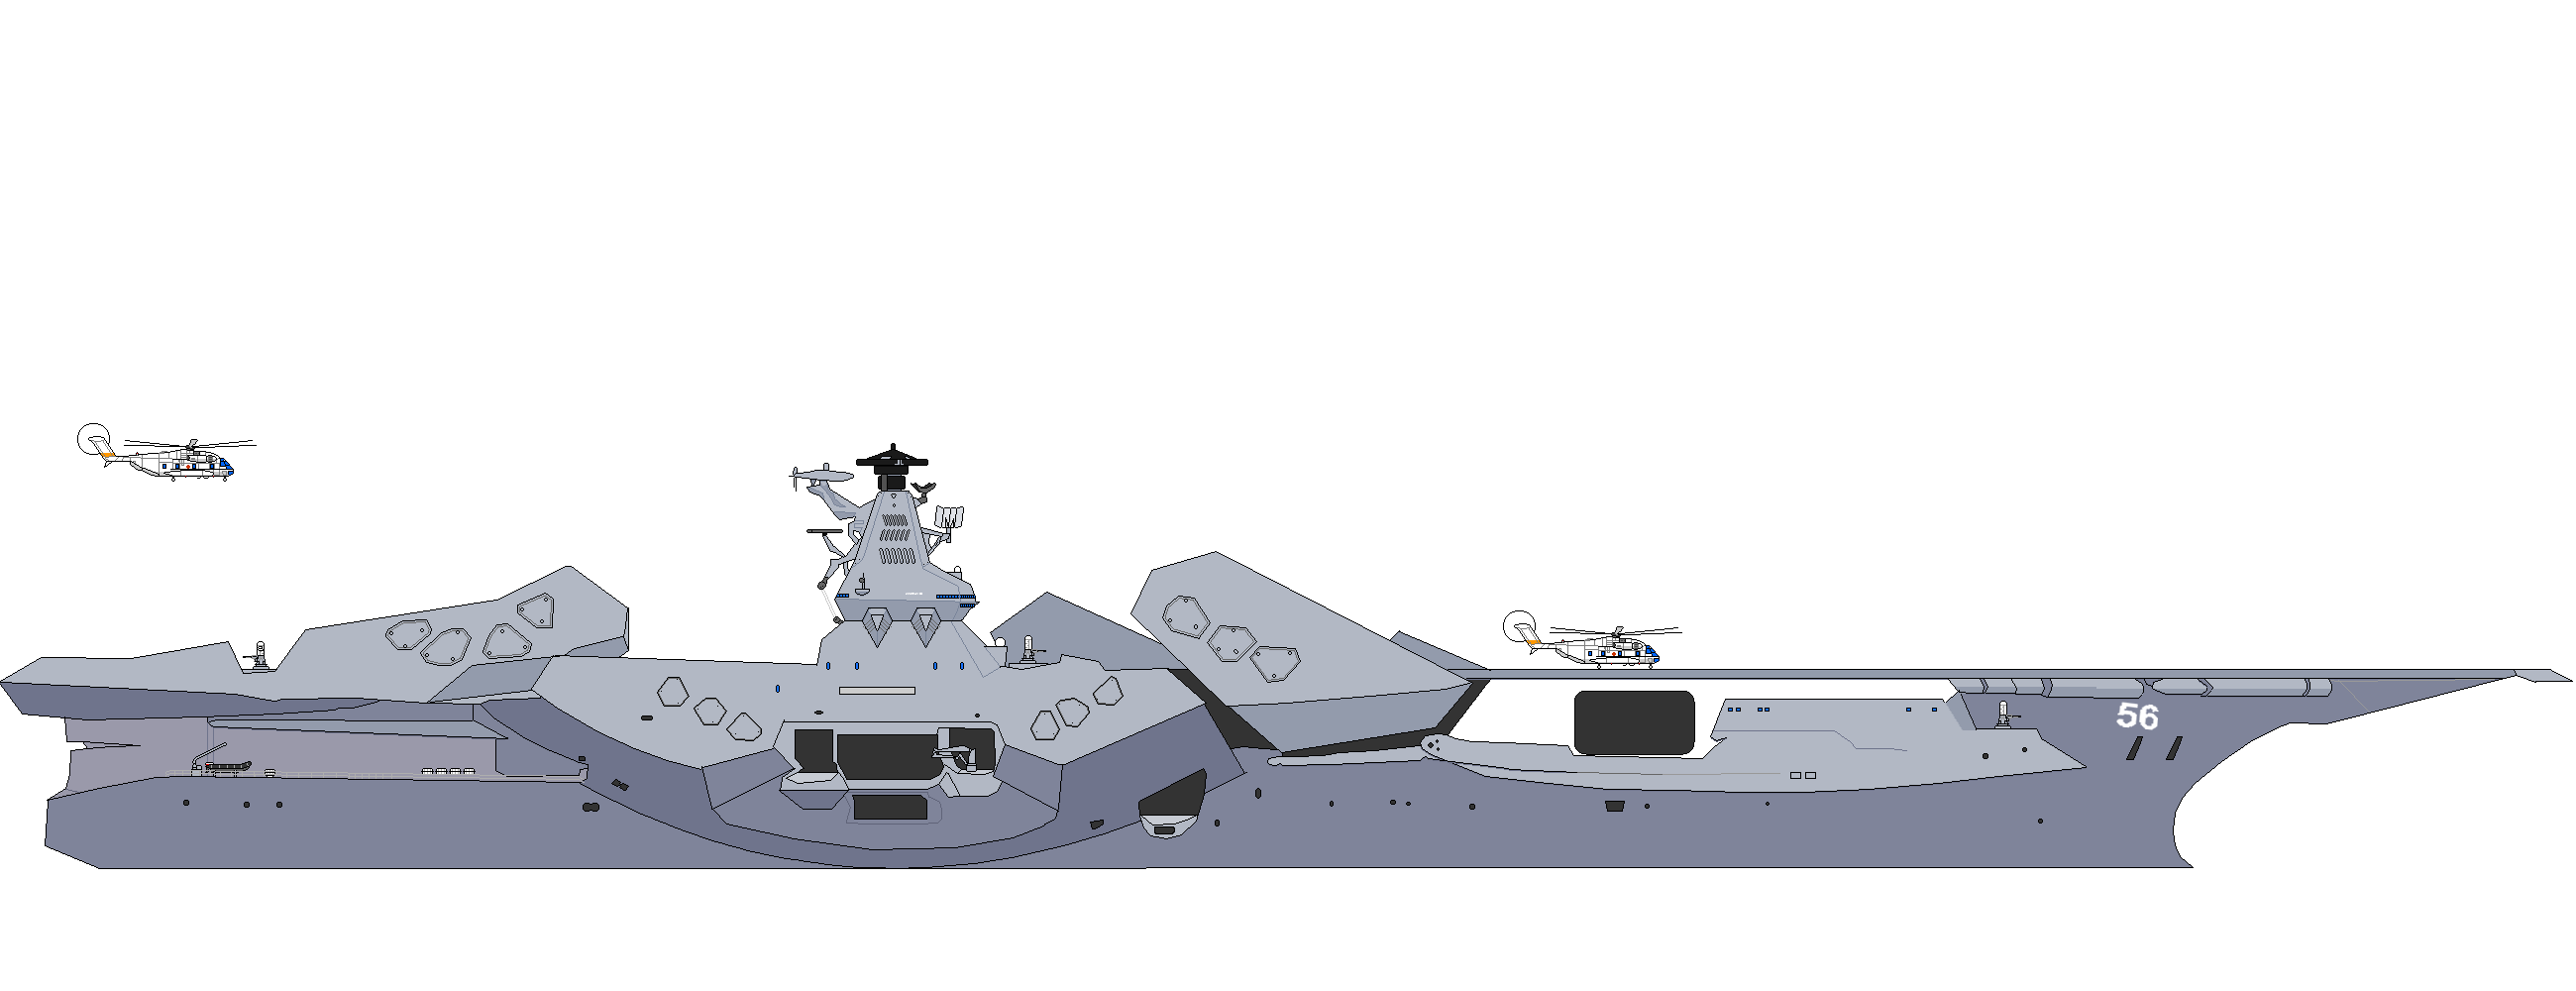 Some small changes and the stern is now almost finished i will start on the bow and the aircraft soon